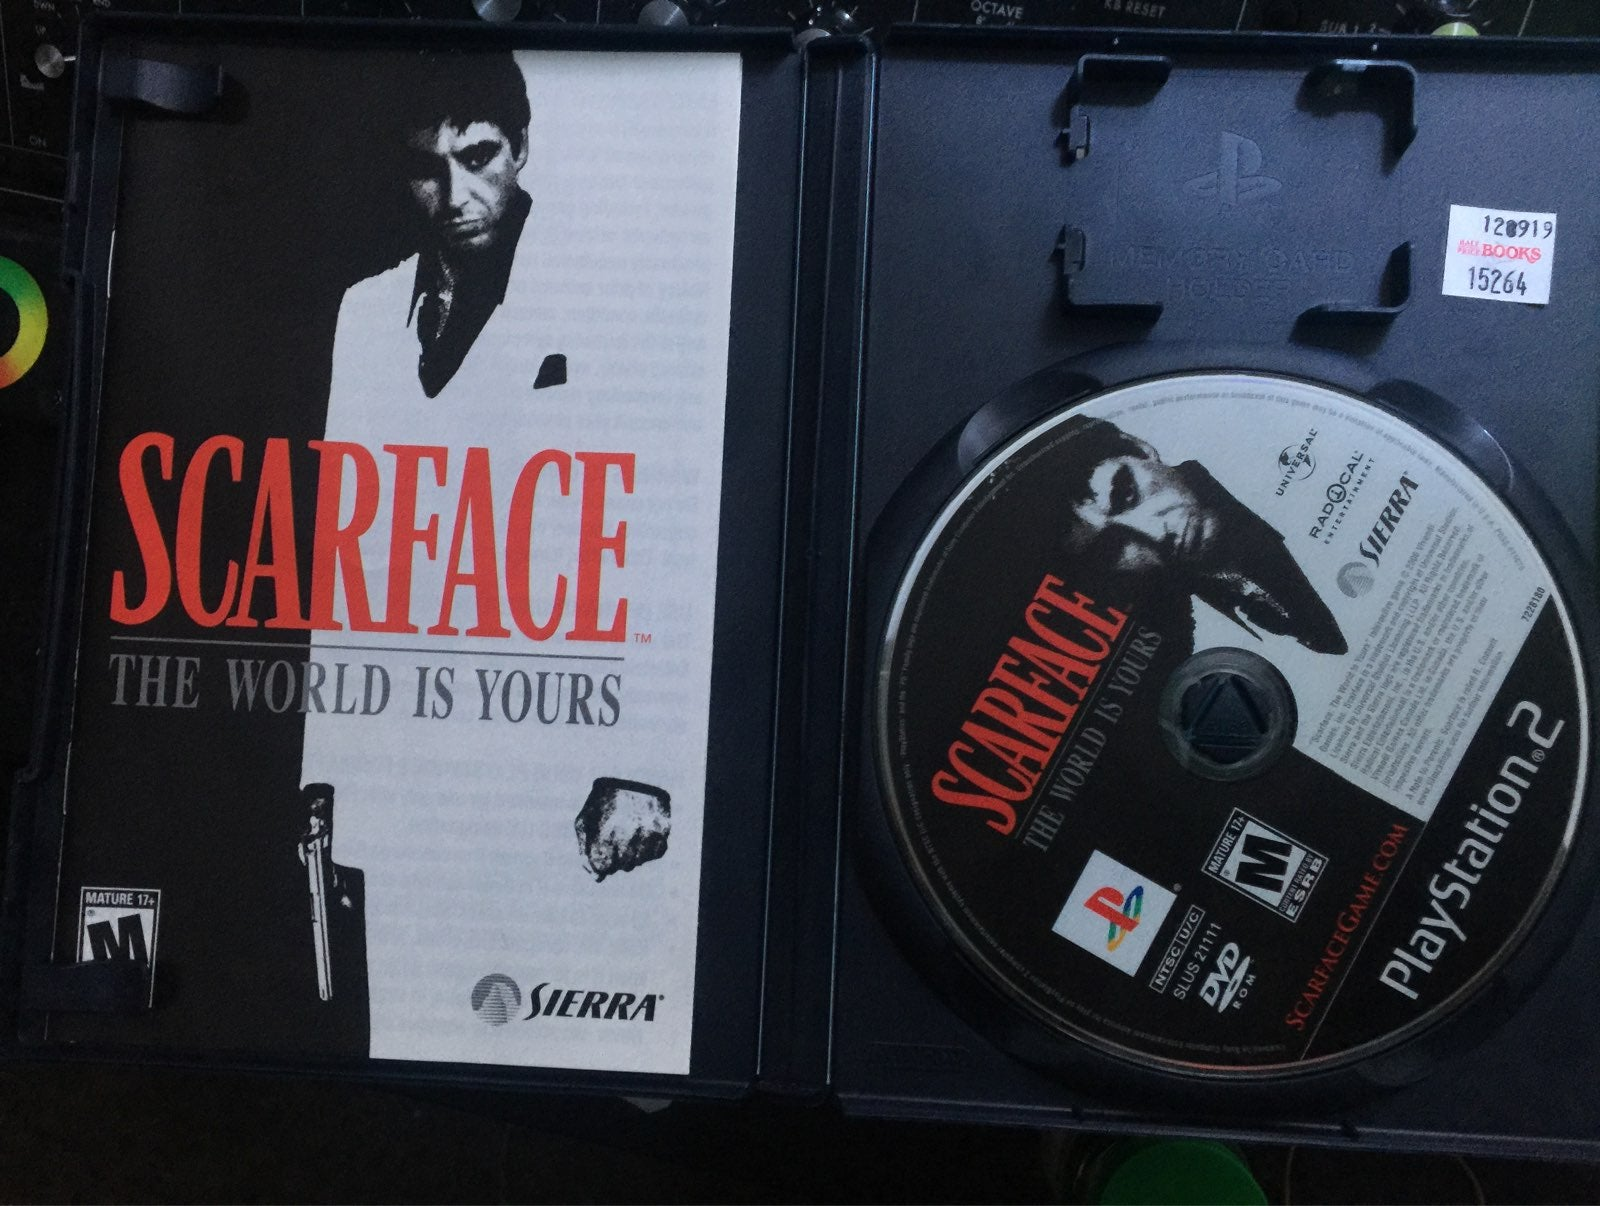 Scarface: The World is Yours on Playstat